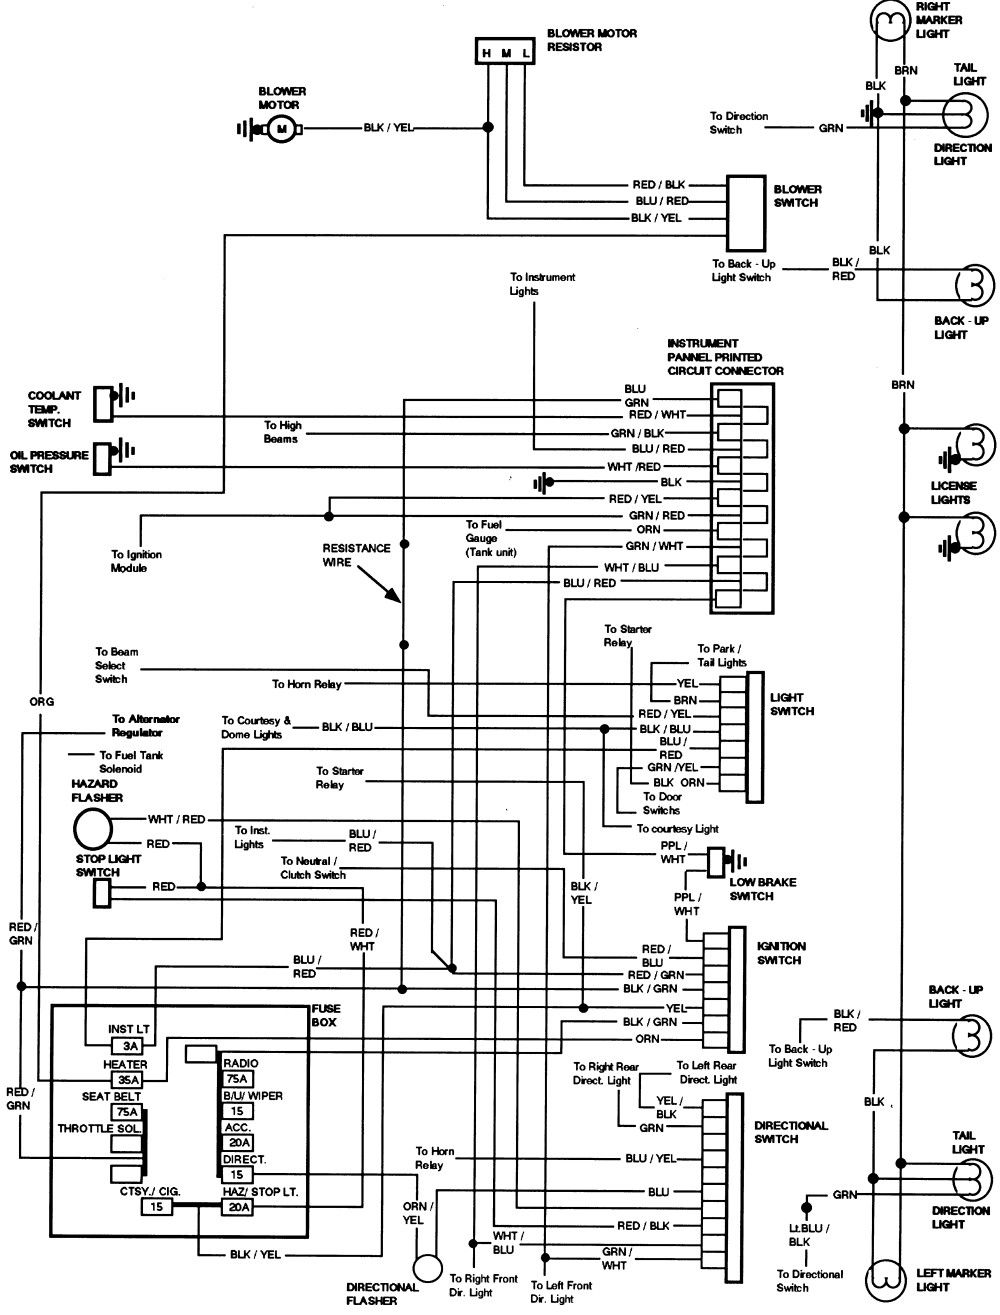 Ford Ignition Switch Wiring Diagram Ford F250 Ford F350 Diesel Ford